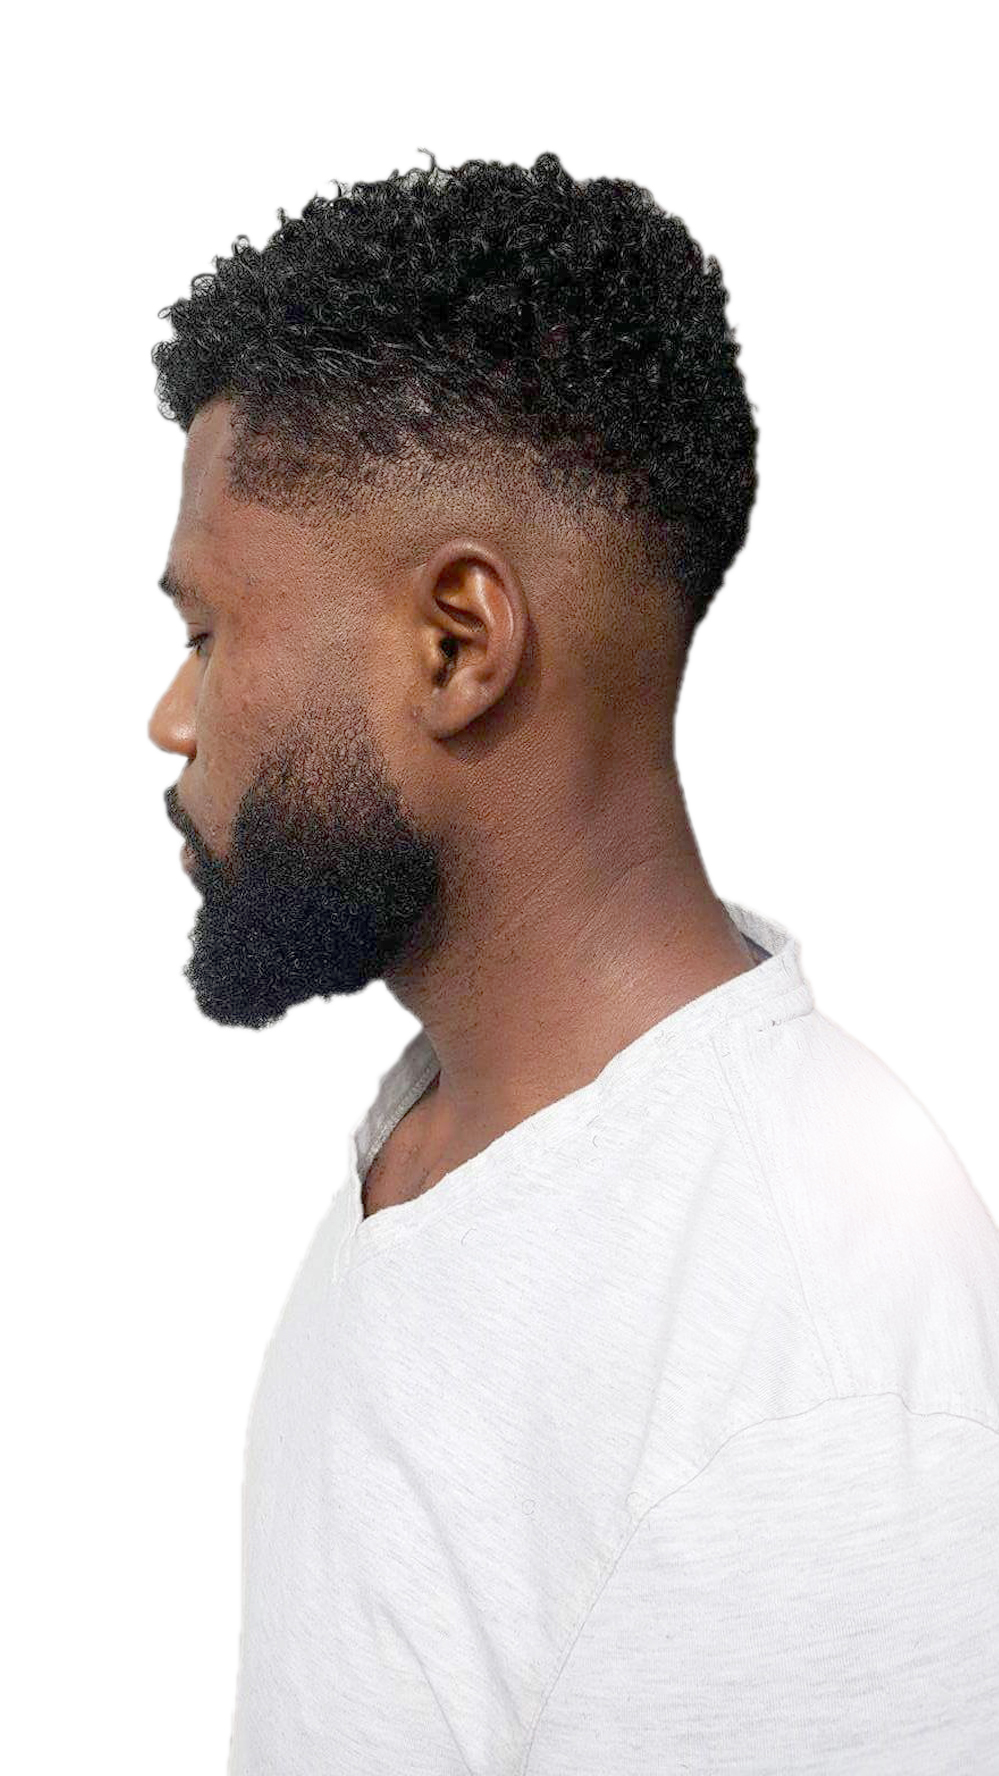 Beard and fade on atta